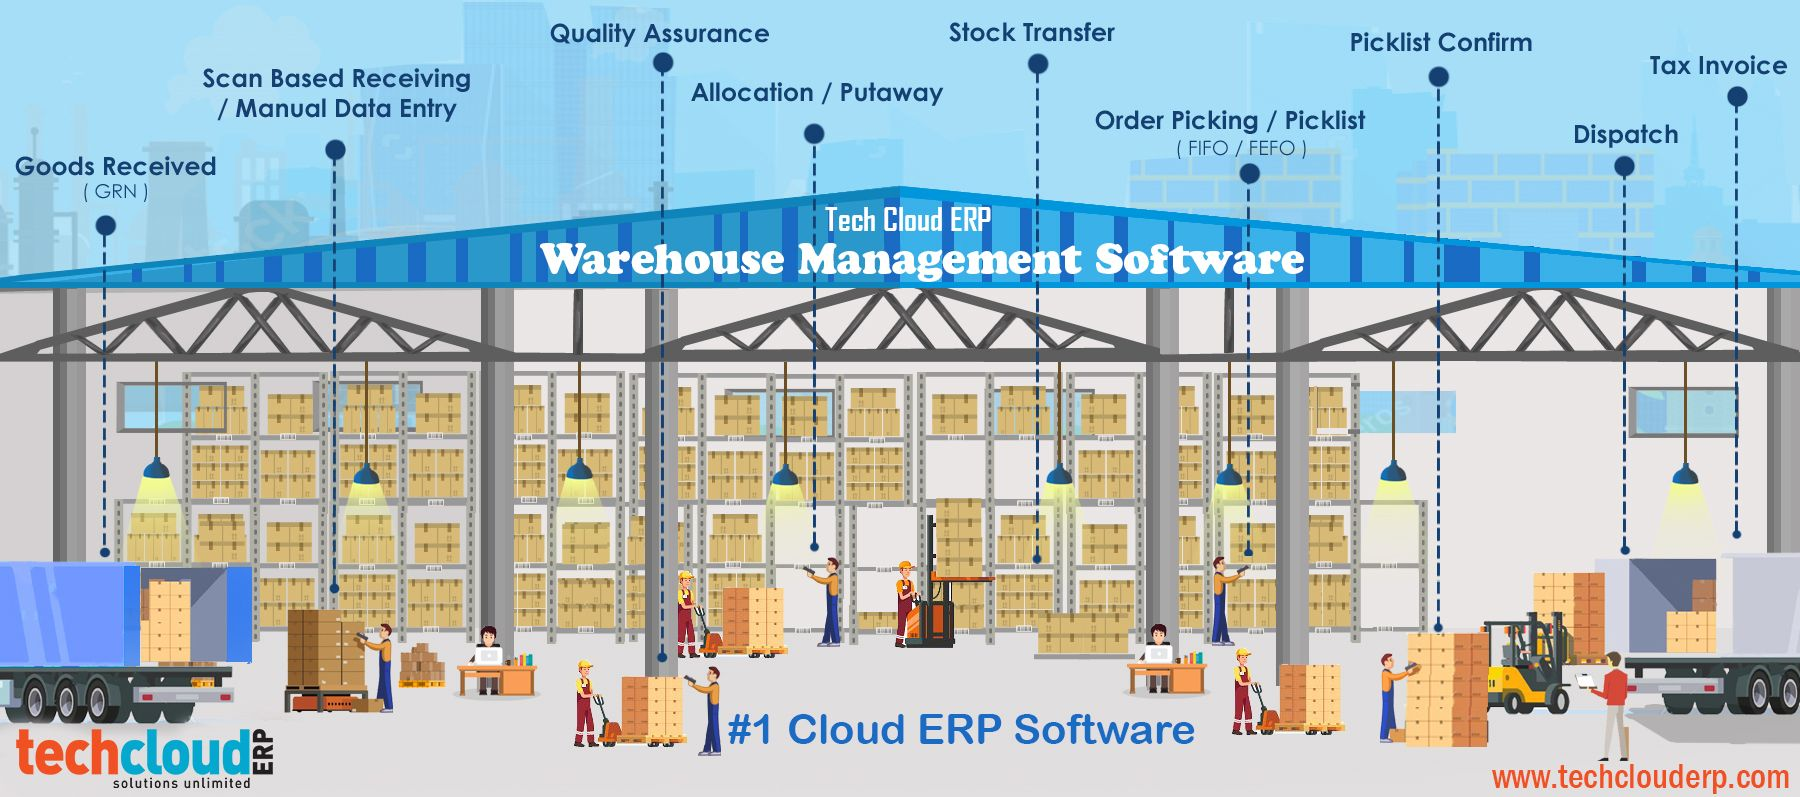 Tech Cloud ERP warehouse management system modules are used